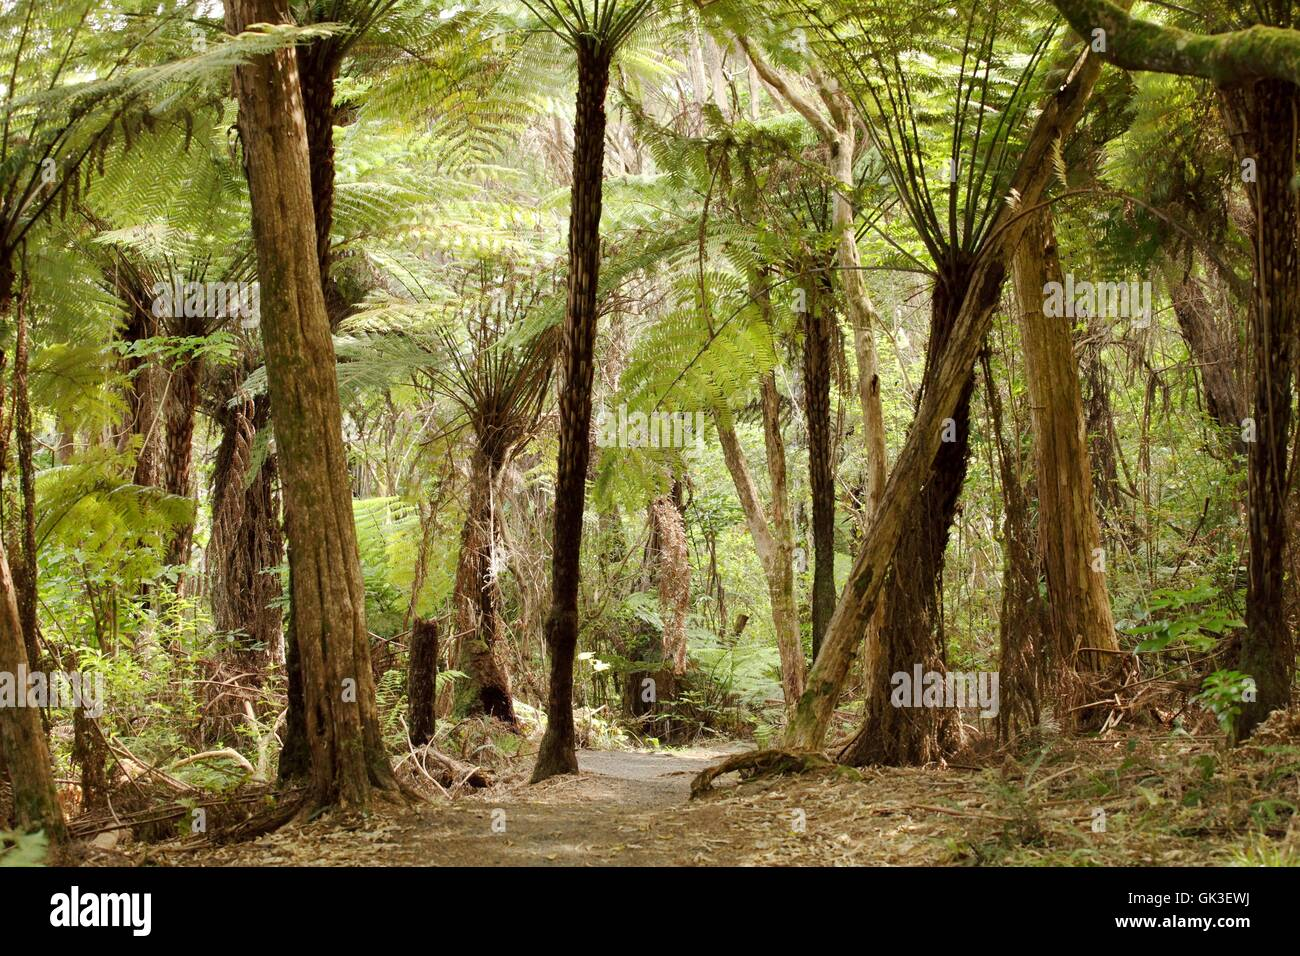 ferns in the jungles of new zealand - Stock Image